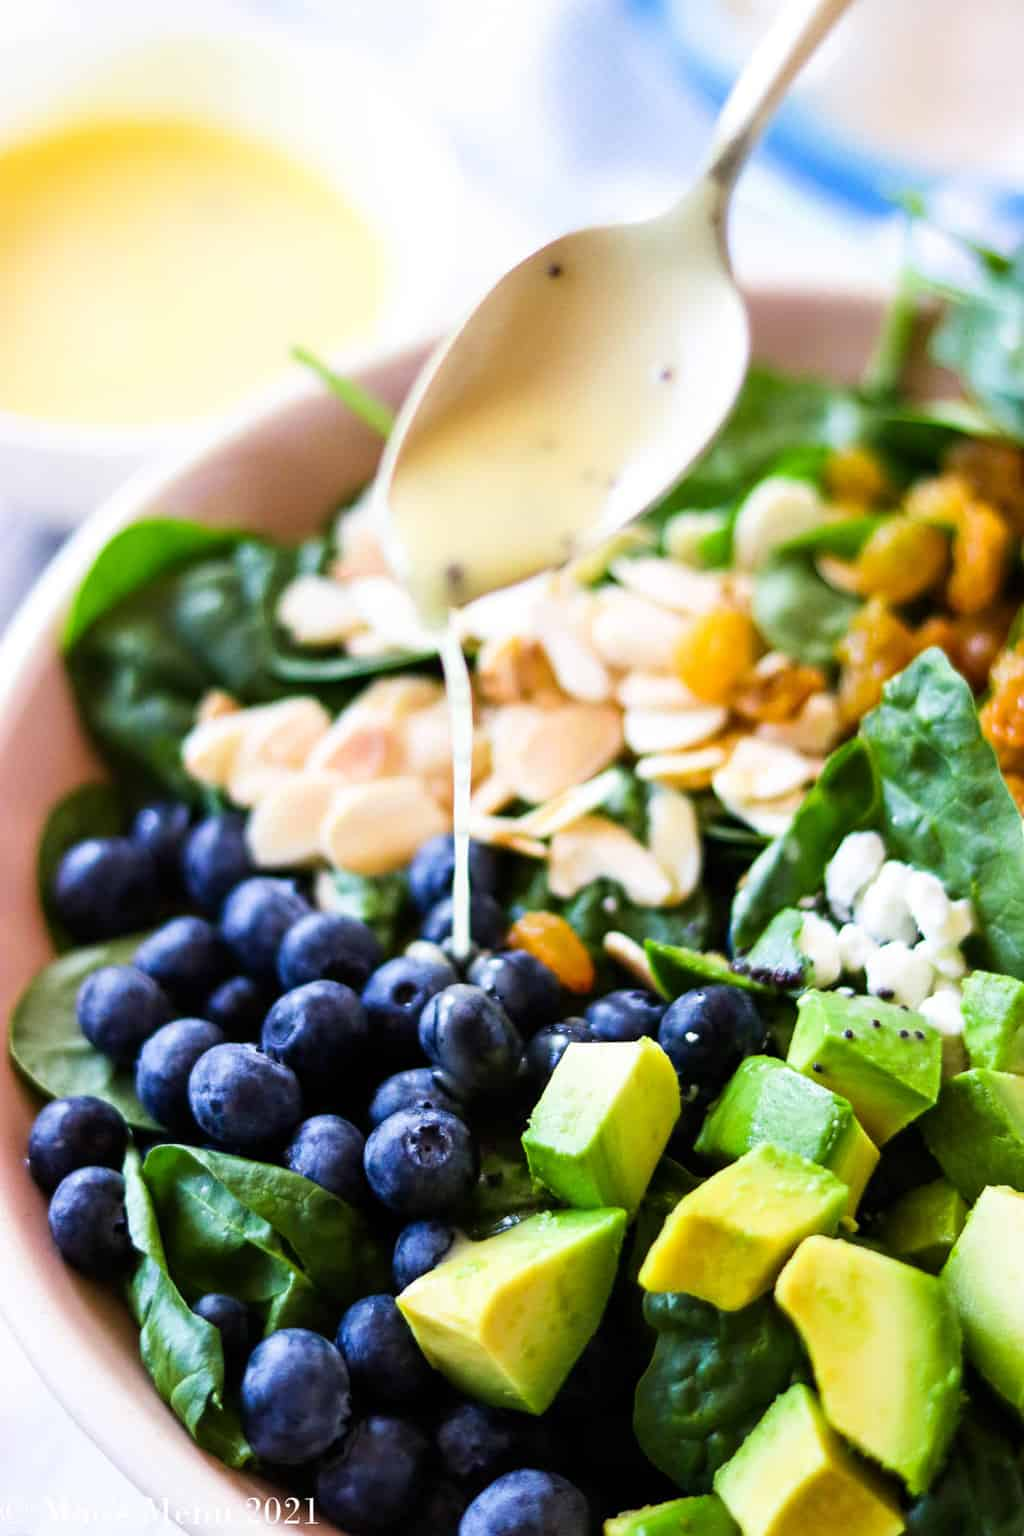 Dressing the blueberry spinach salad with the homemade poppy seed dressing recipe